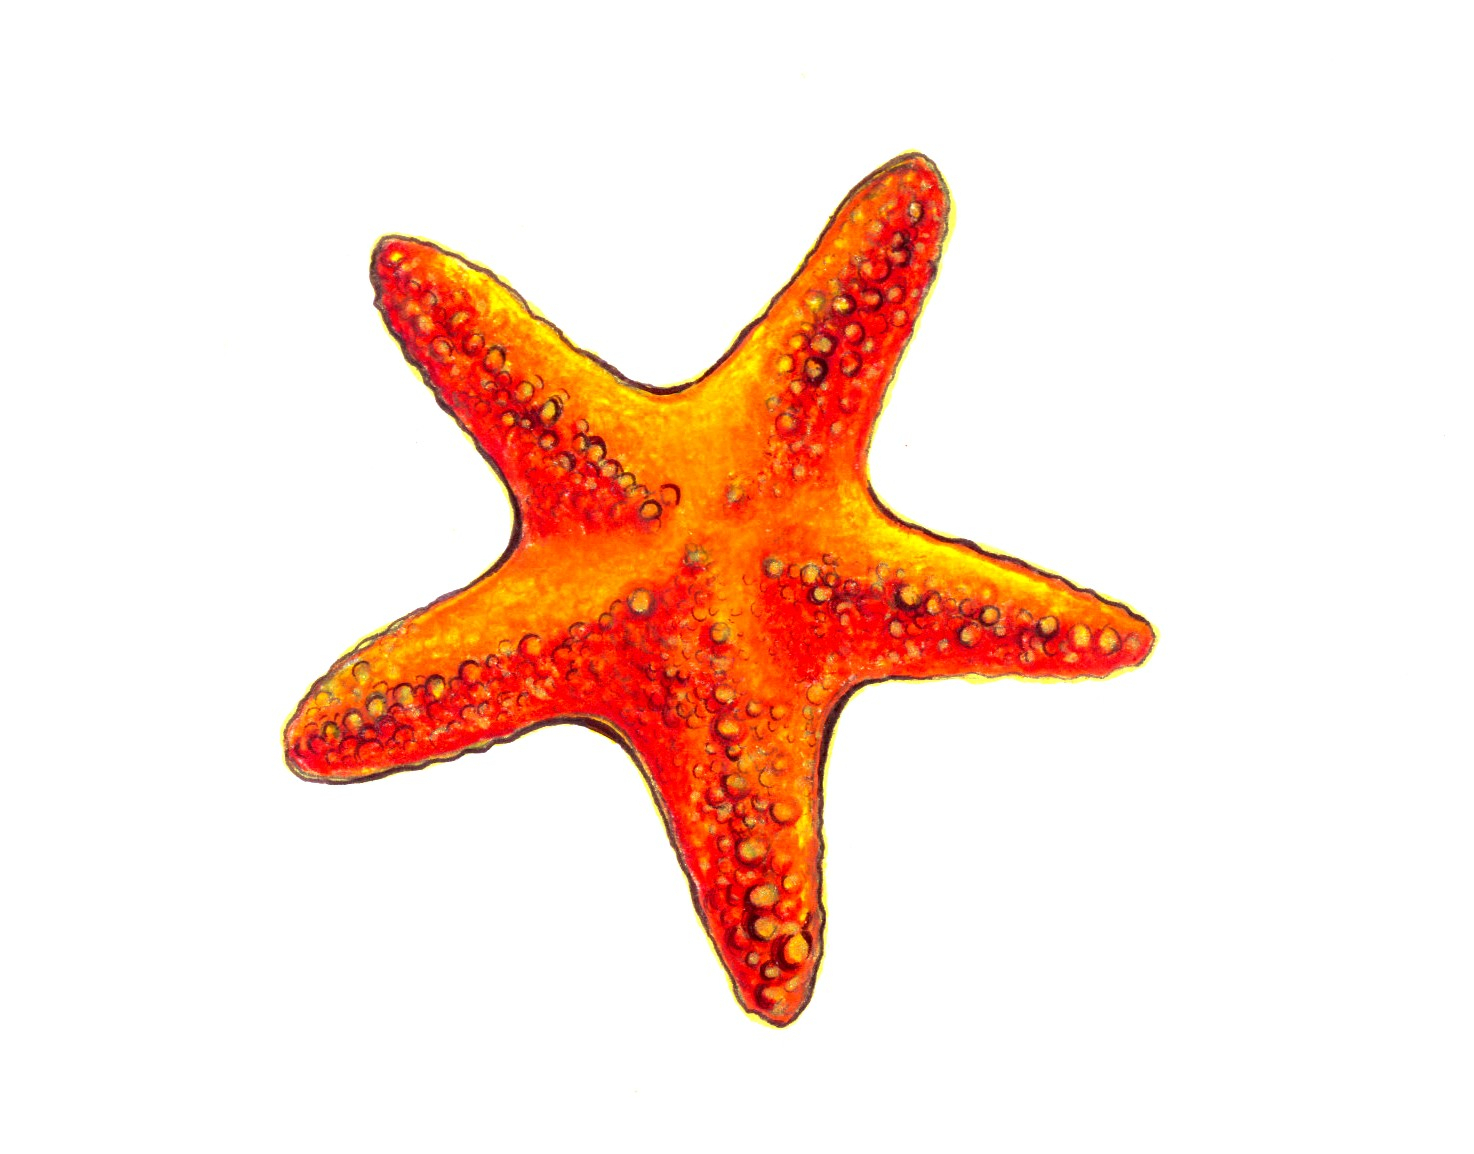 Starfish Drawing at GetDrawings.com | Free for personal use Starfish ...